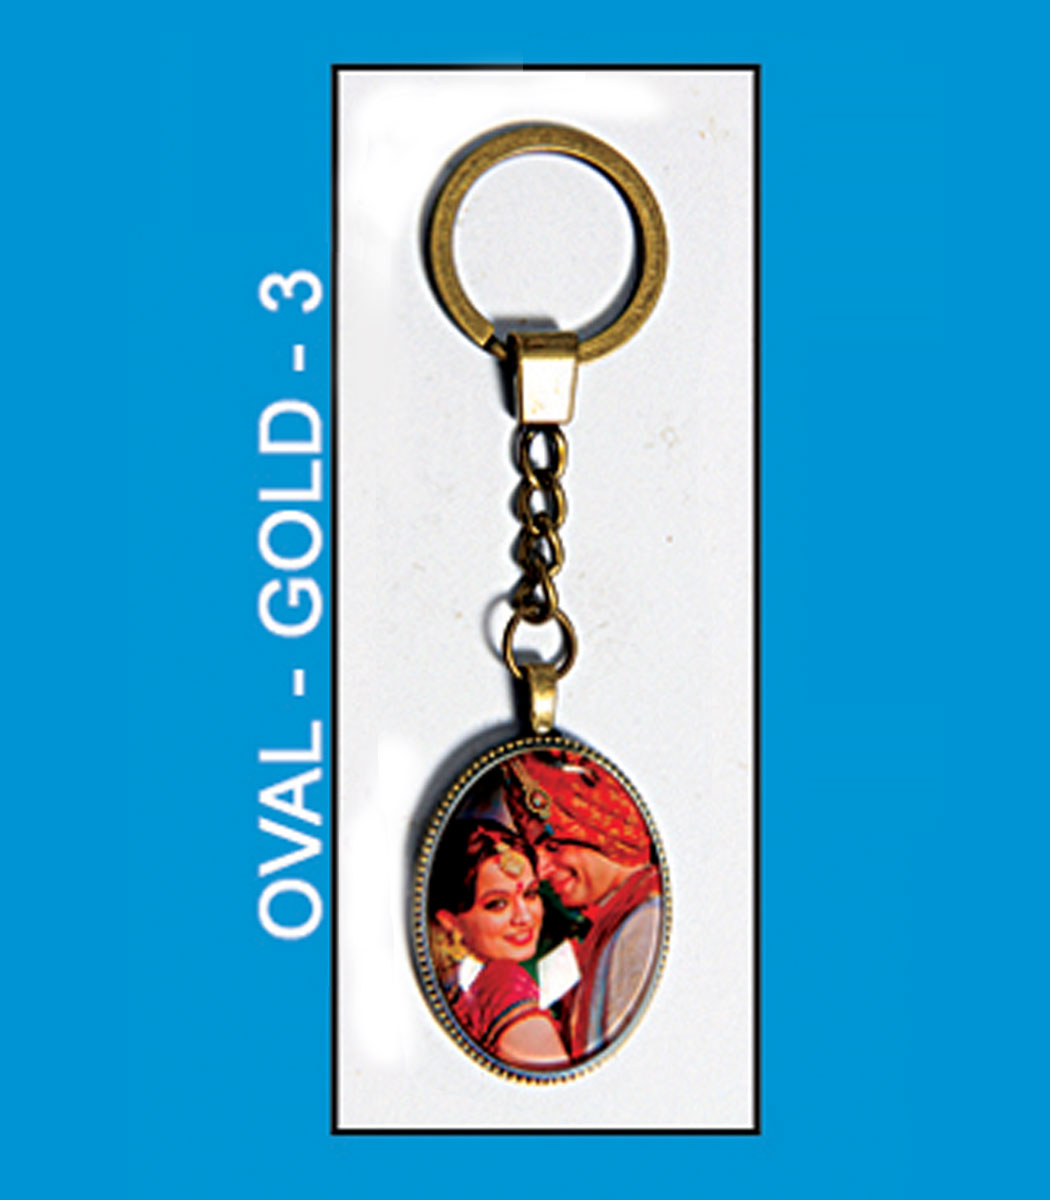 Oval gold 3 antique metal key chain